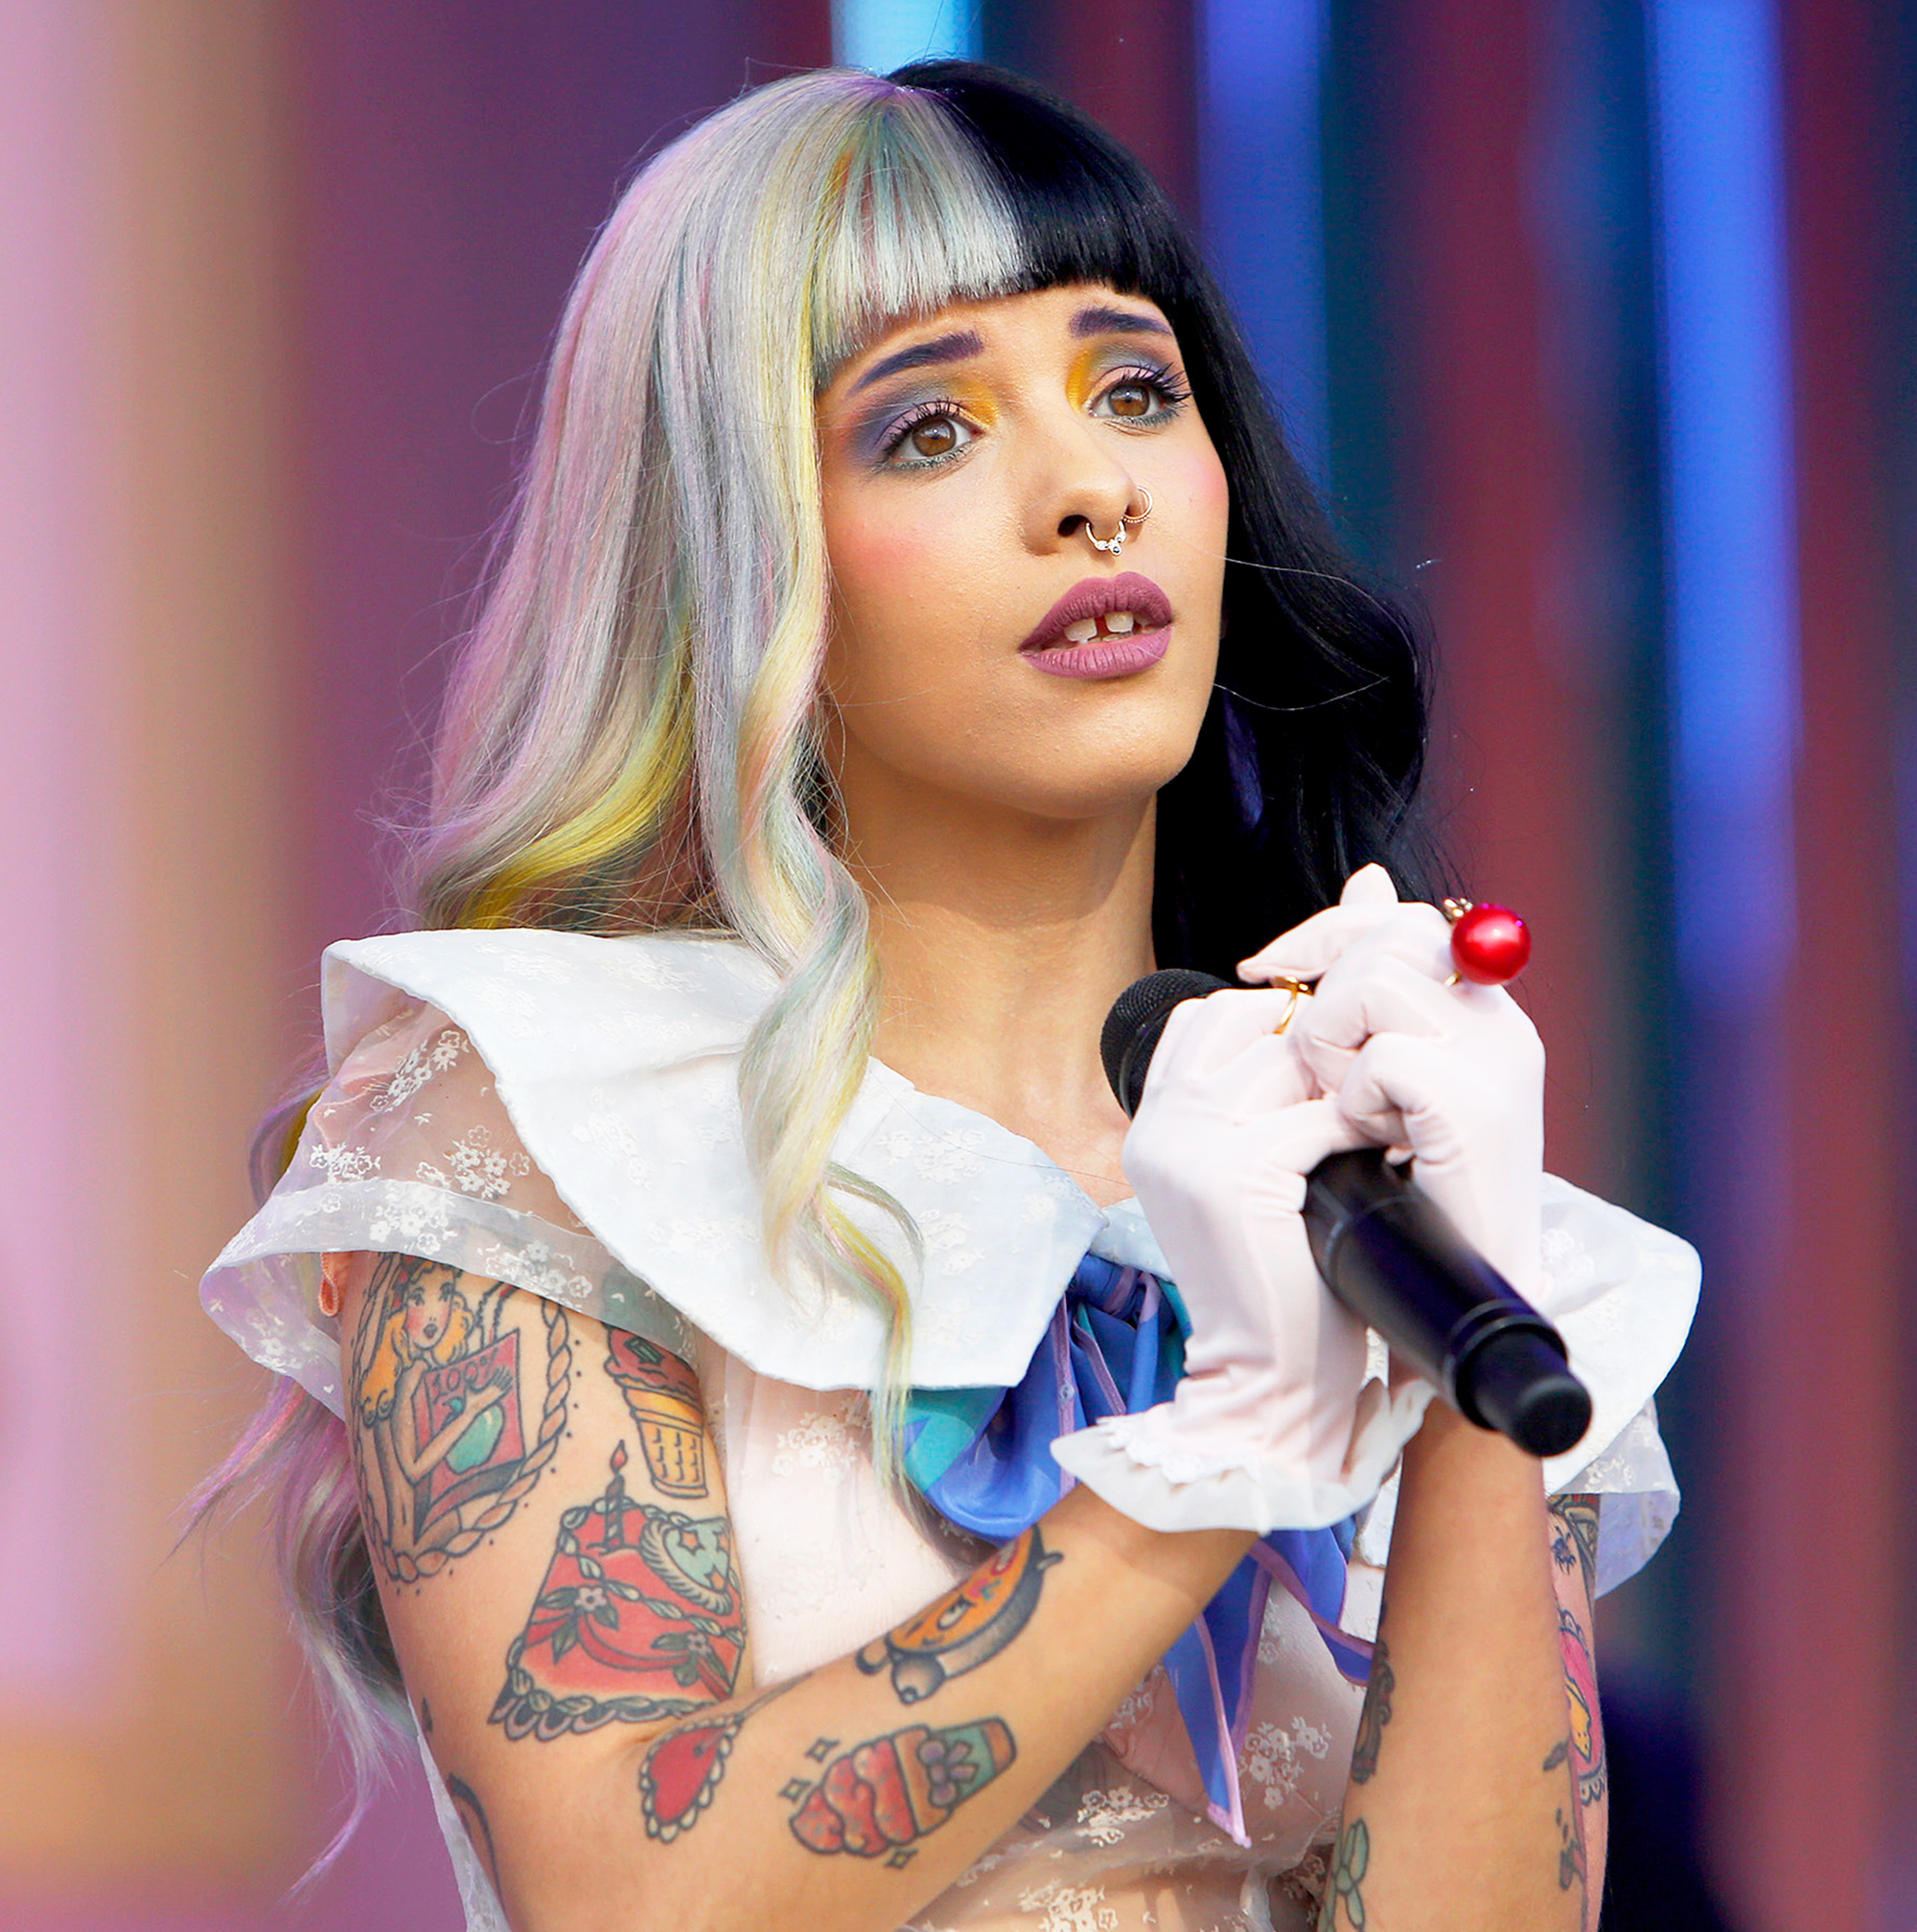 Musician Accuses Voice Finalist Melanie Martinez of Raping Her